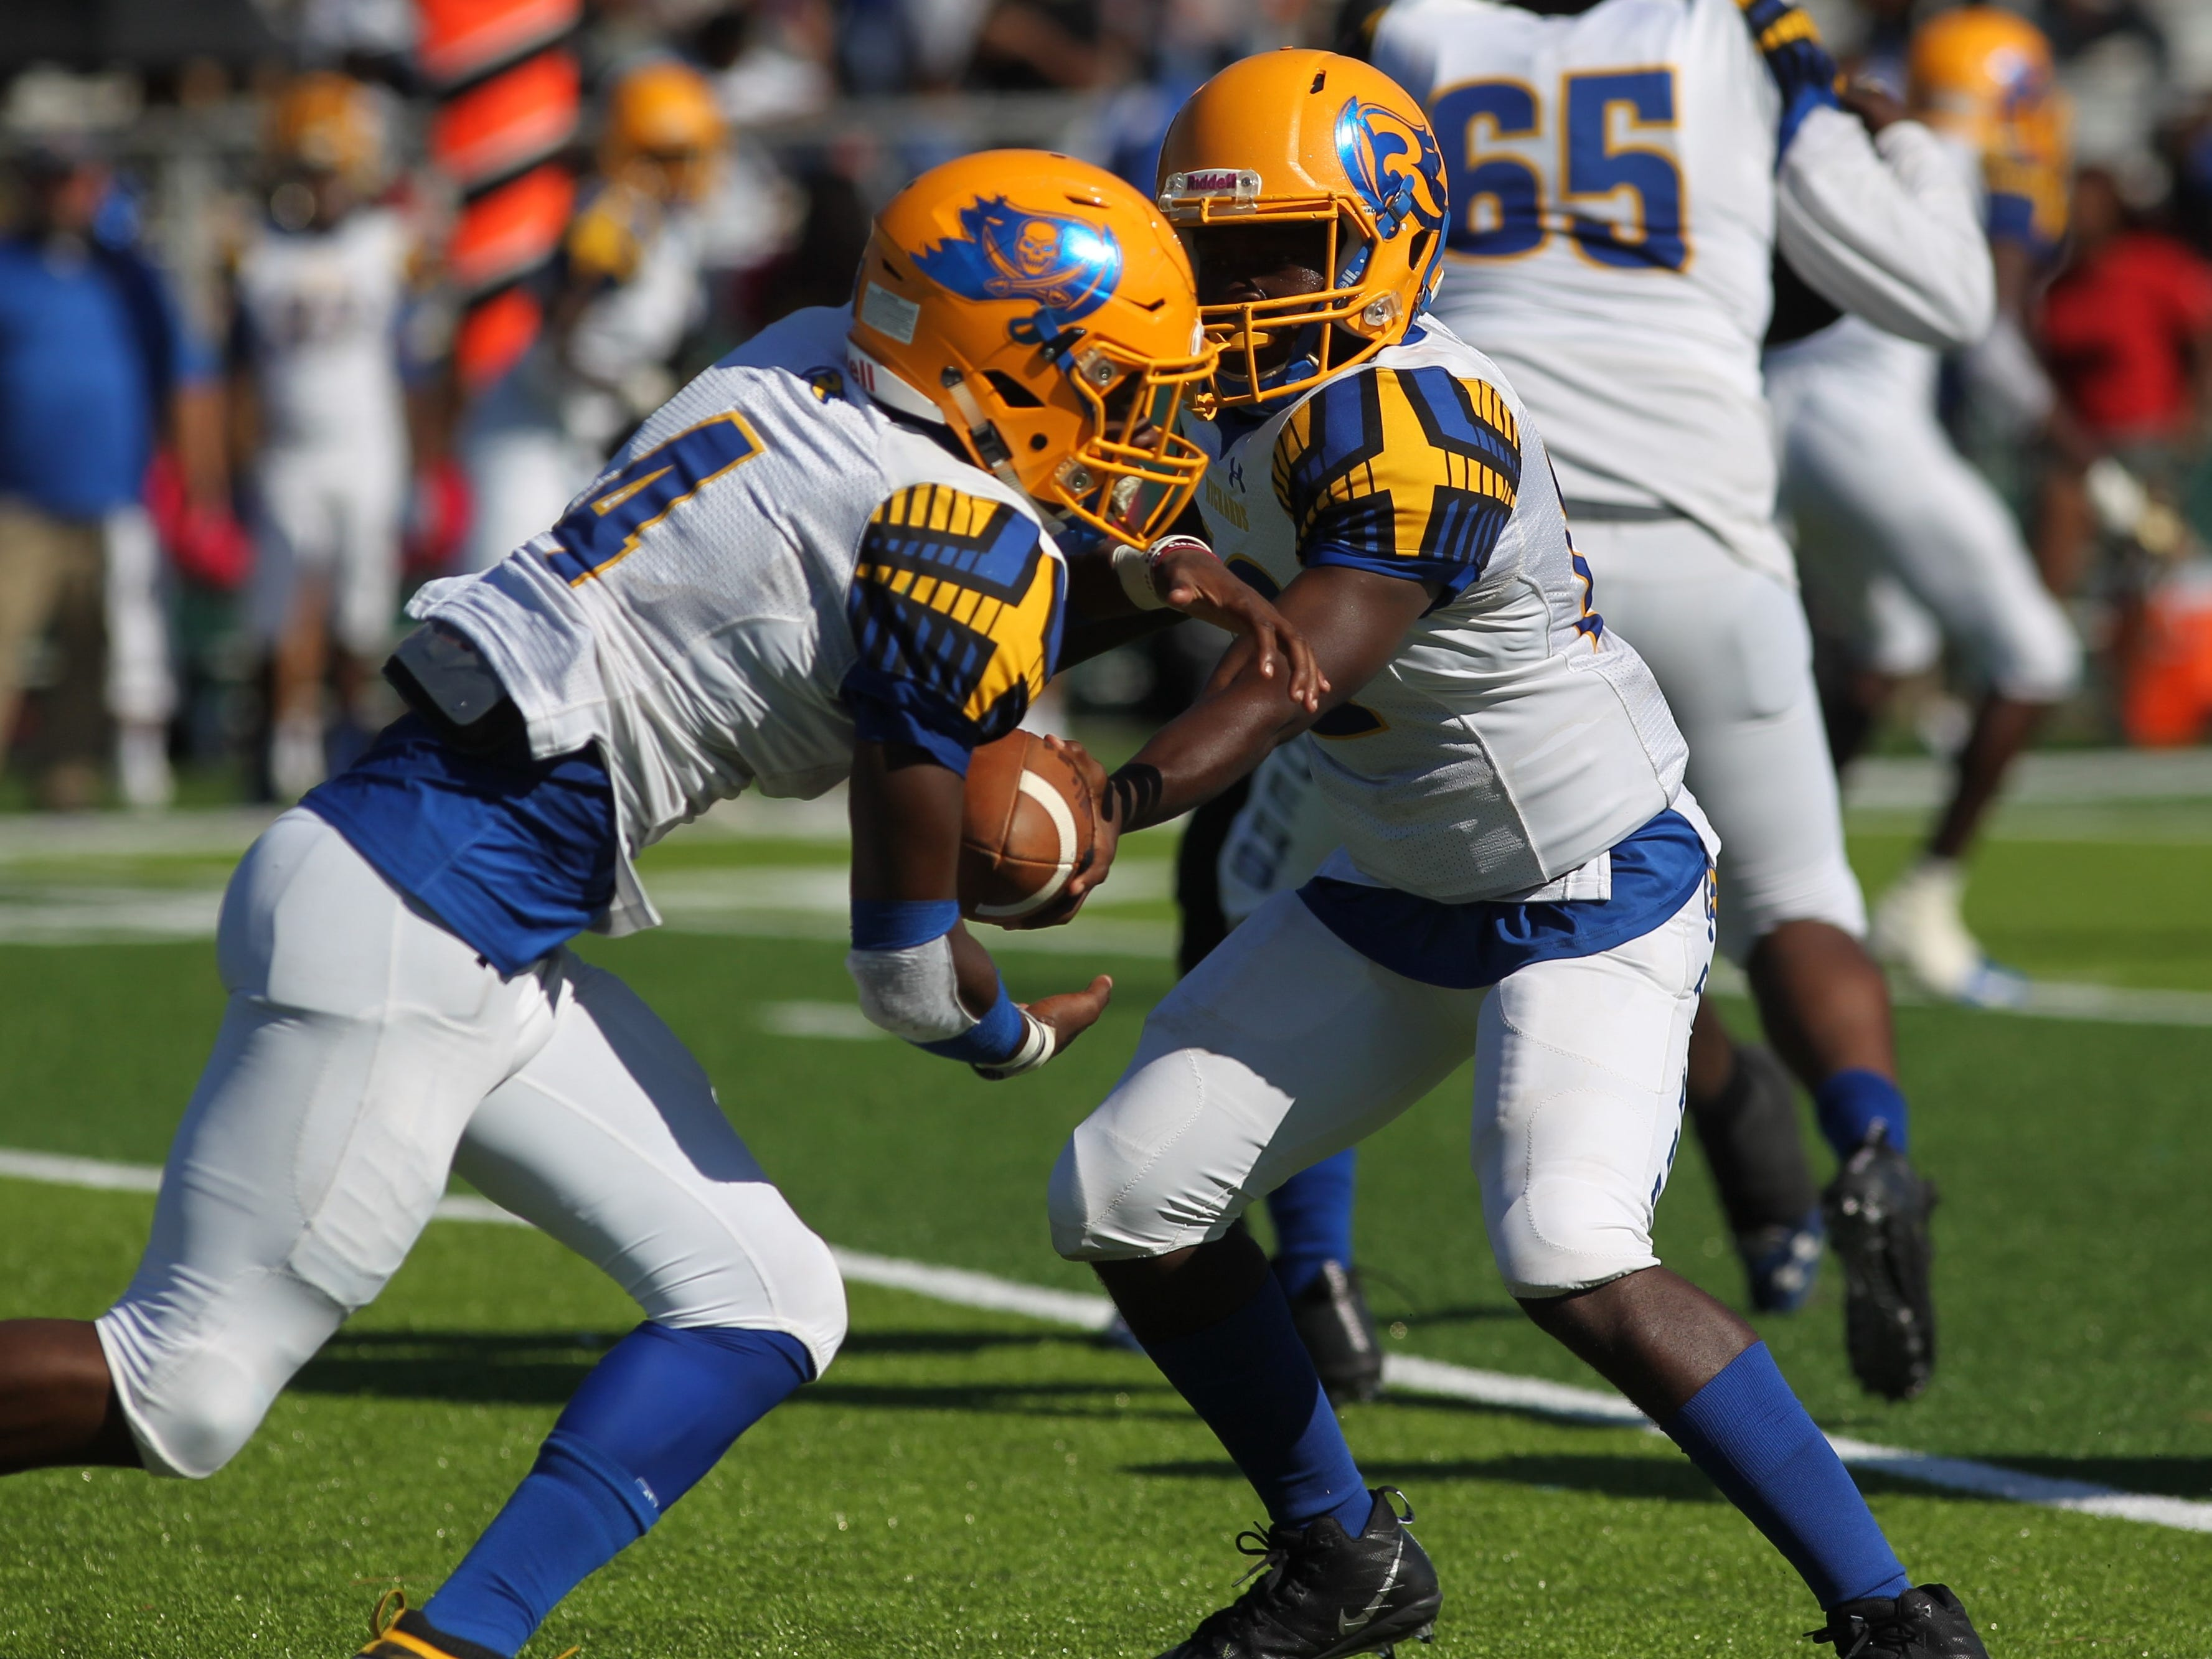 Rickards quarterback D'eryk Pete hands off to running back Kelvin Dean during Saturday's game against Godby.